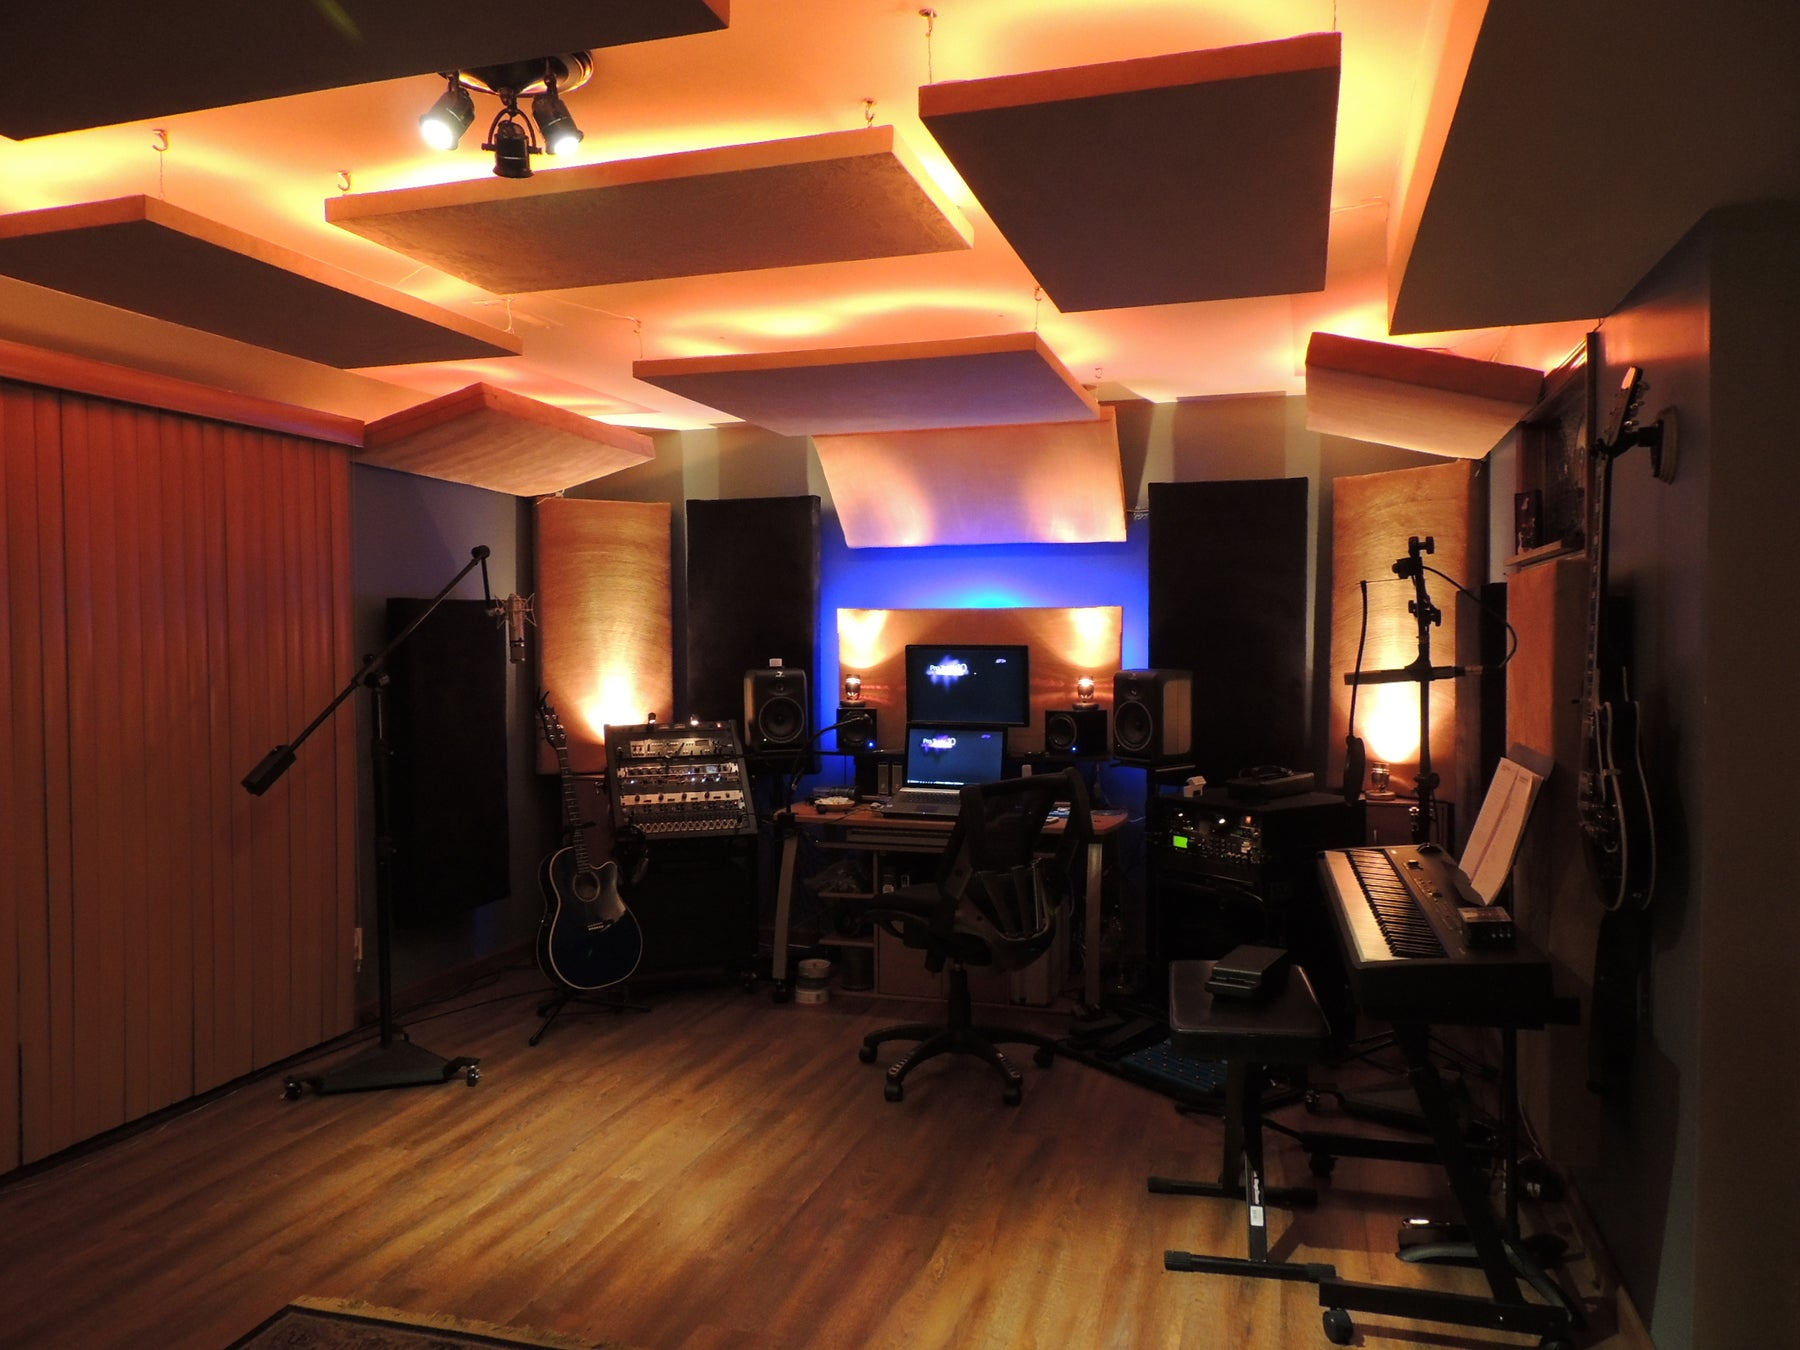 Does Mixmastered Acoustics offer acoustic panels in custom sizes?